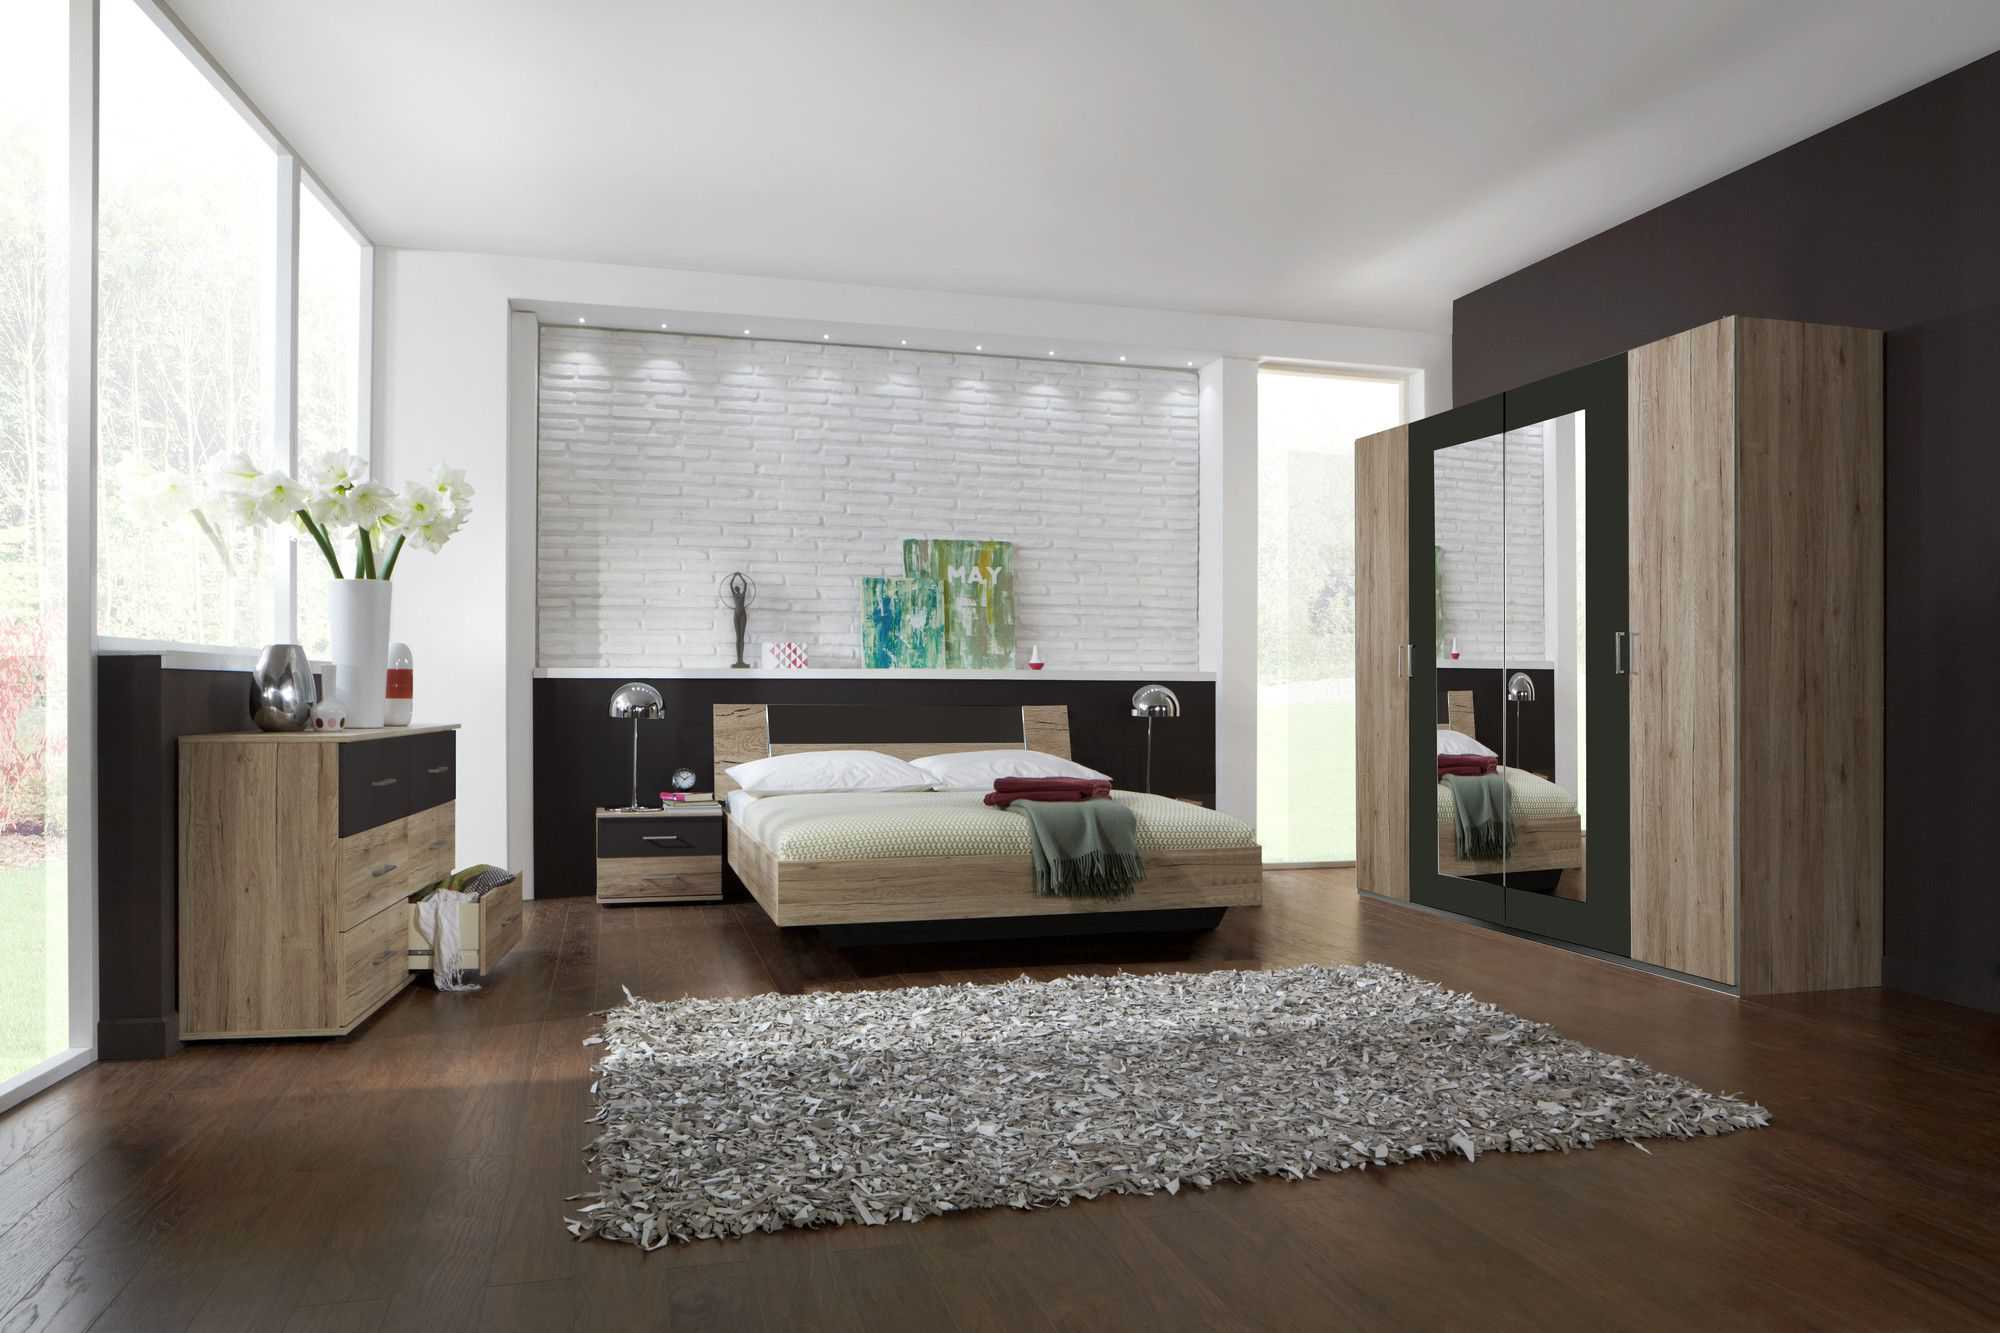 comment am nager une chambre coucher moderne. Black Bedroom Furniture Sets. Home Design Ideas